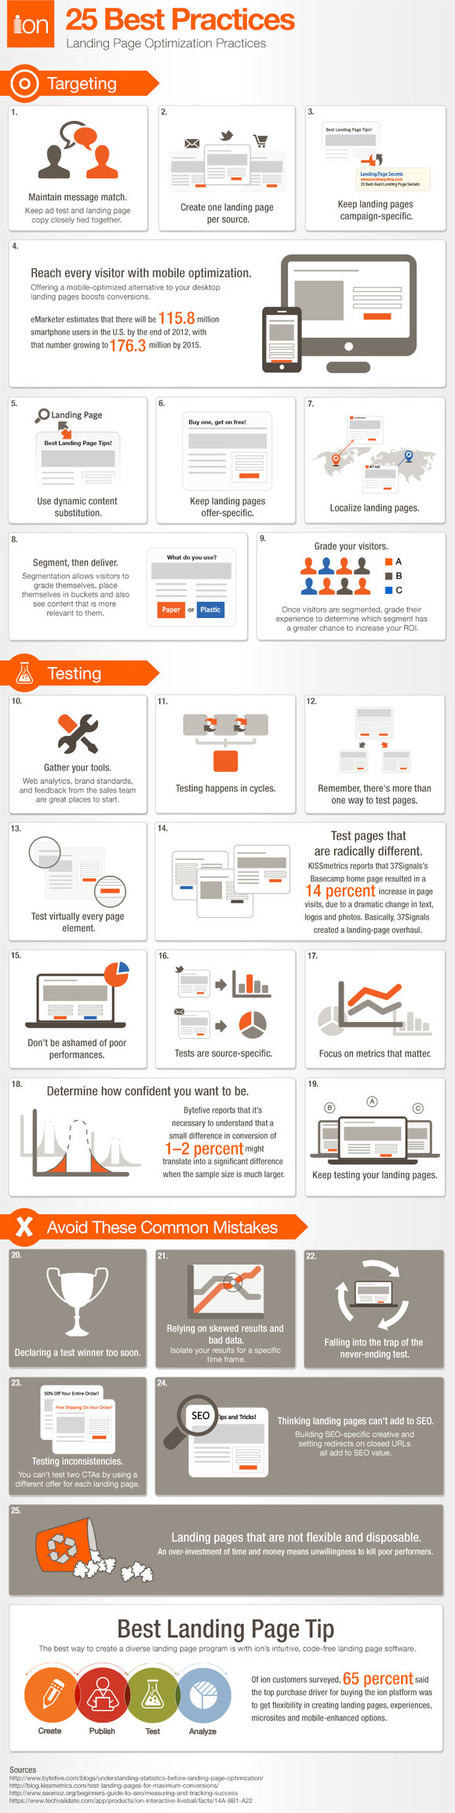 New Infographic: 25 Landing Page Best Practices | Top Internet Marketing Infographics - in my opinion | Scoop.it